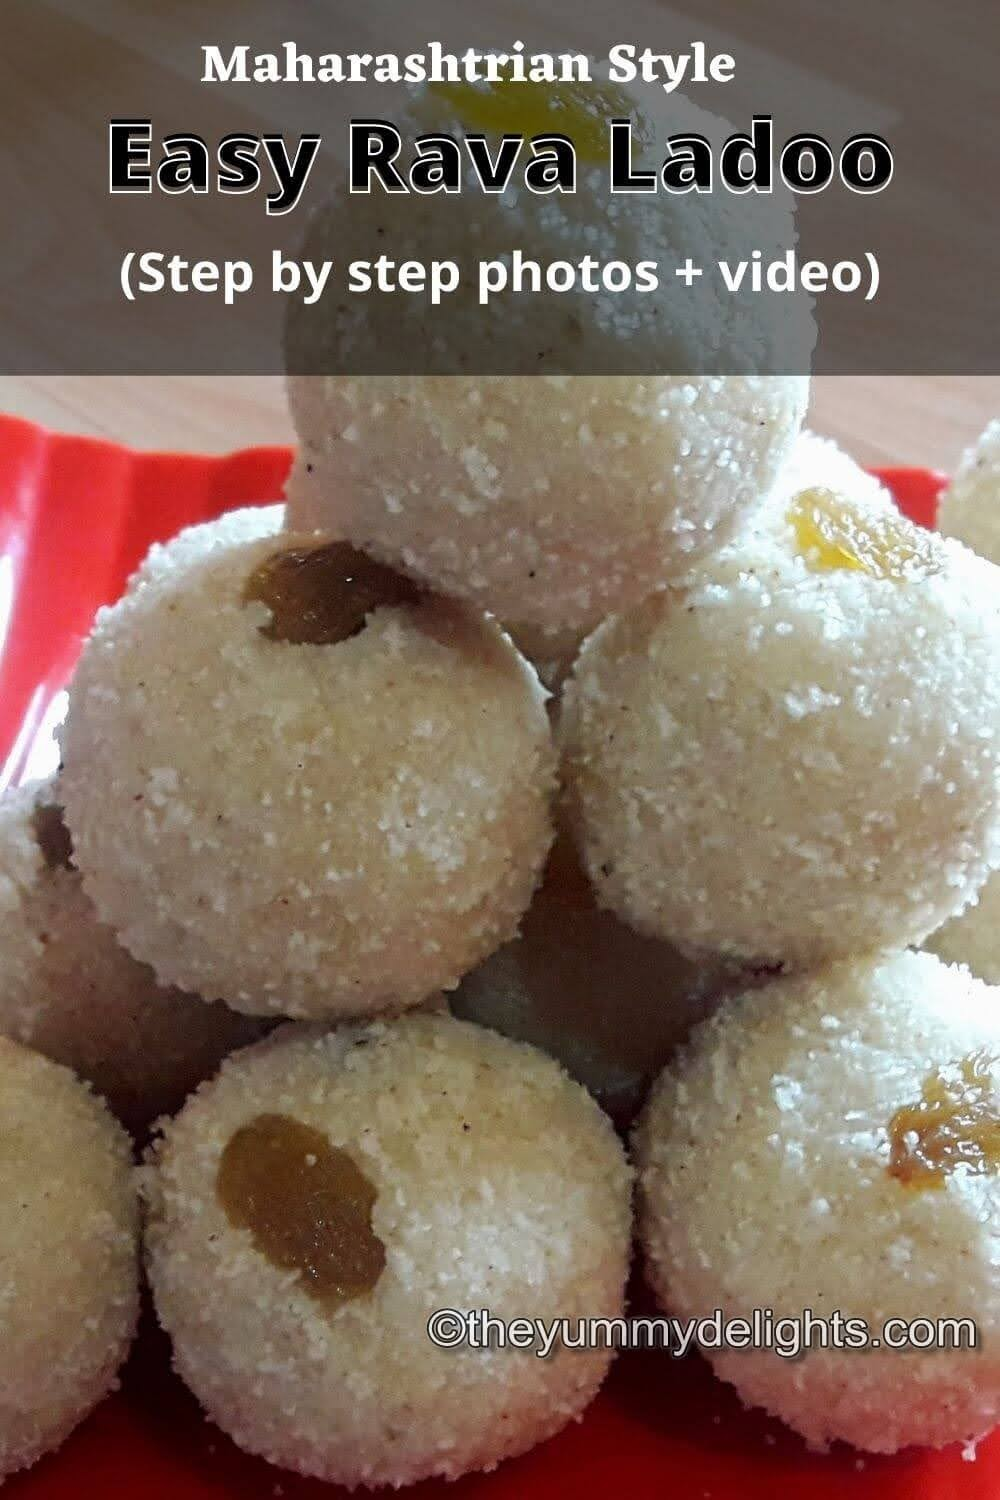 close-up view of Maharashtrian rava ladoos stacked on a red plate. Garnished with raisins.